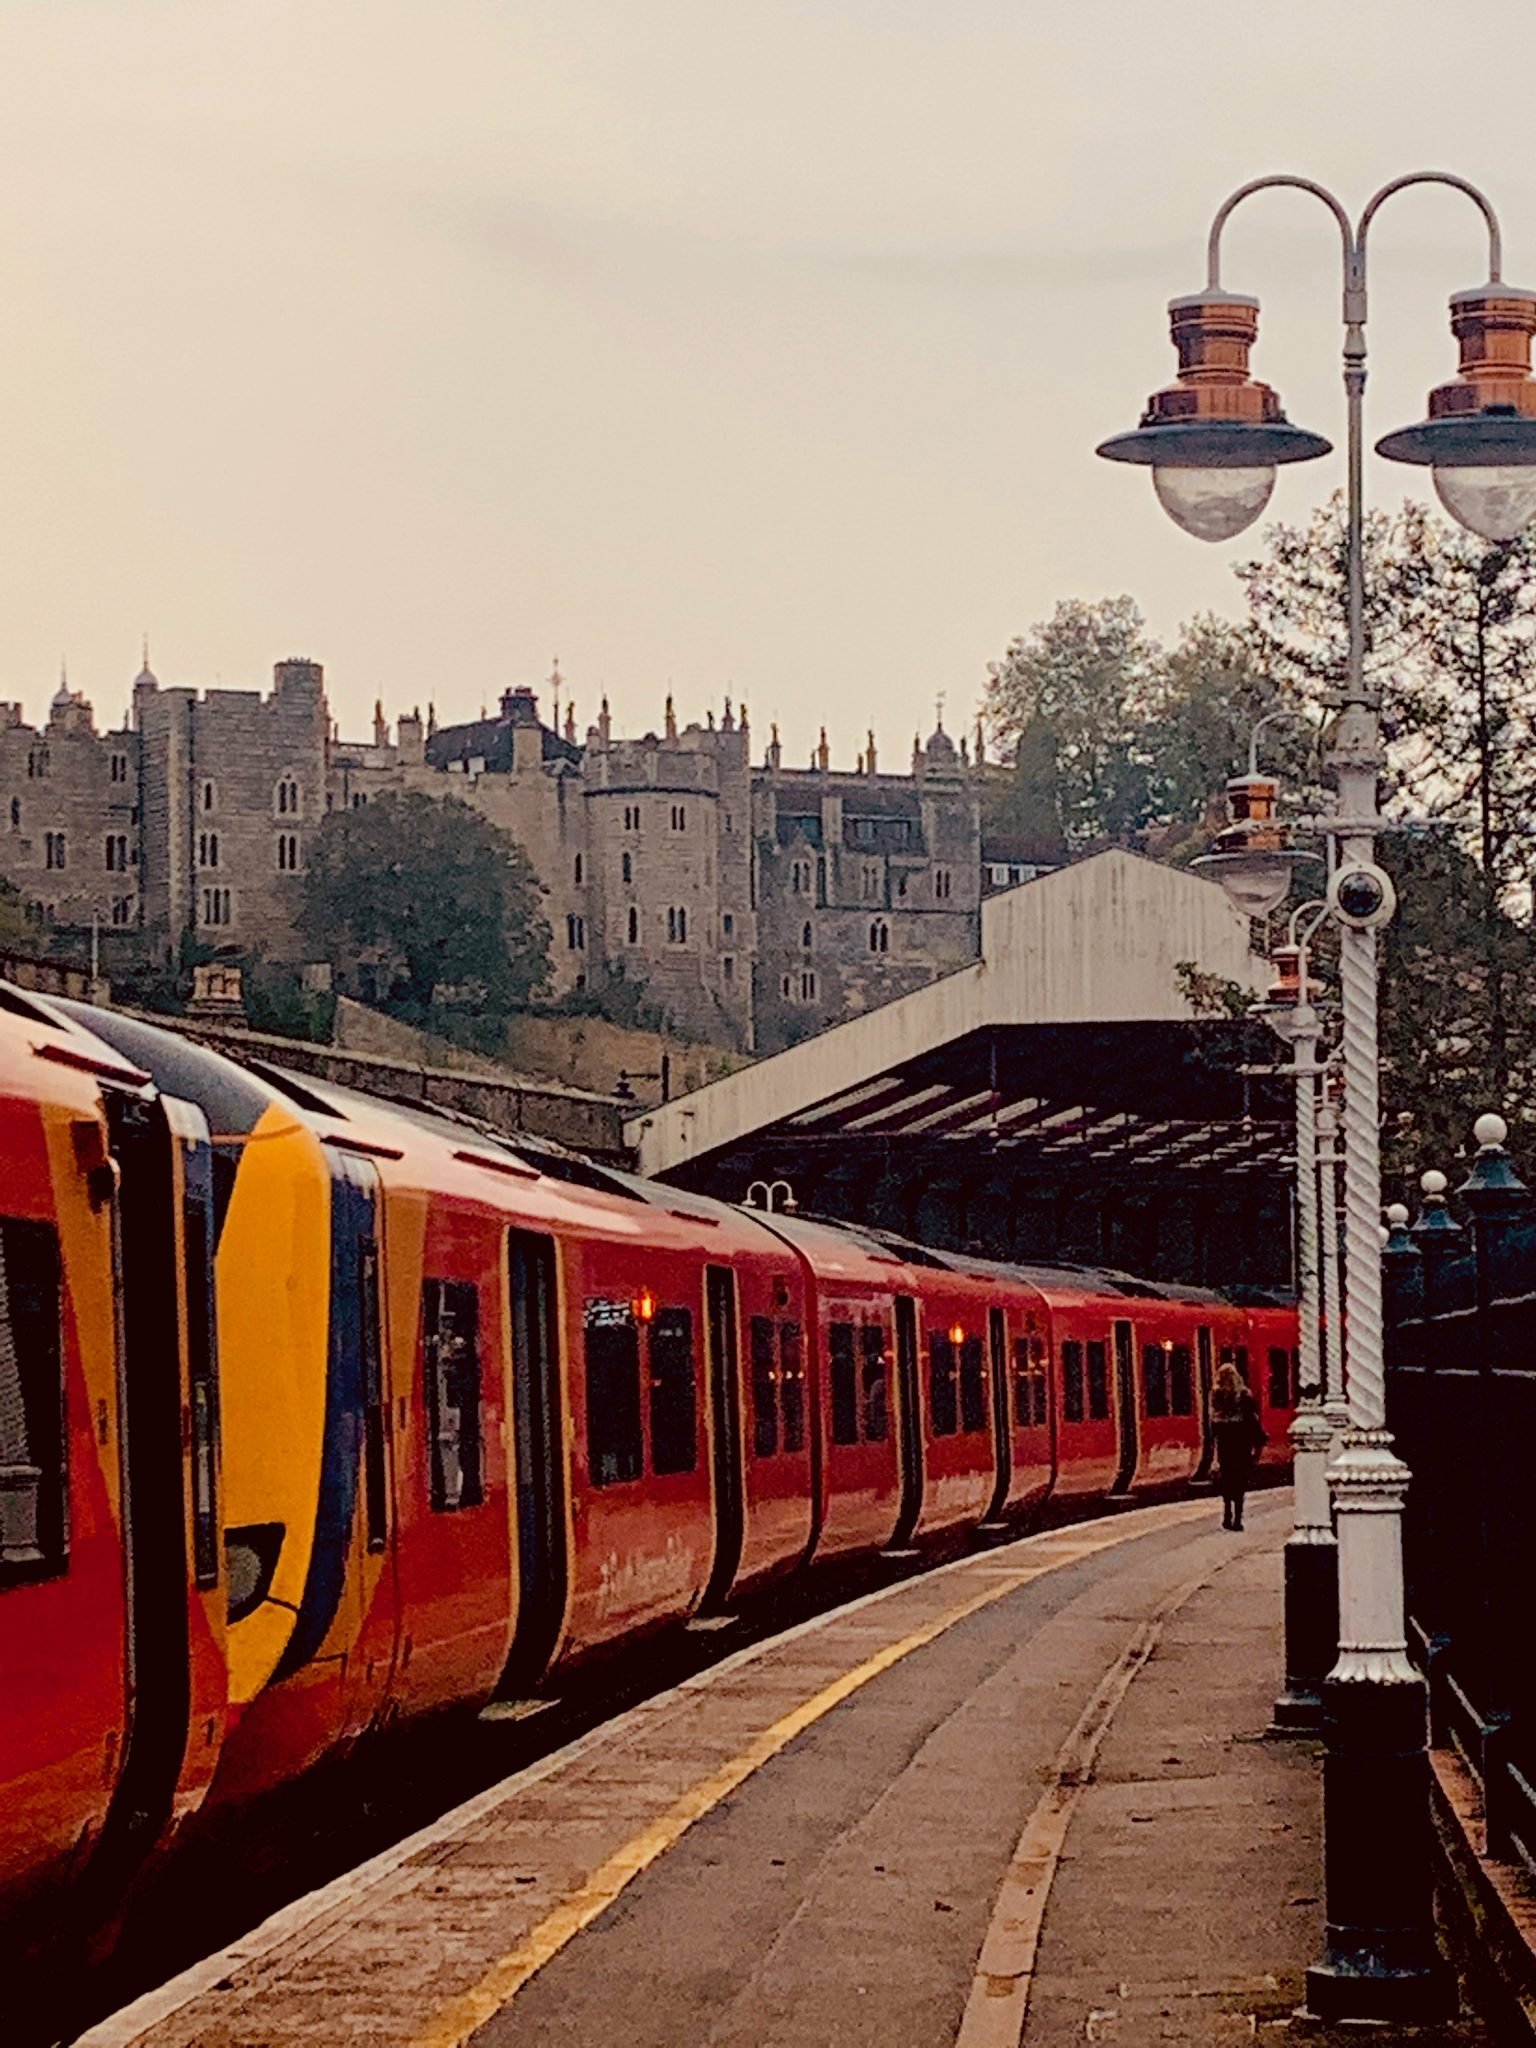 Trains from London to Windsor